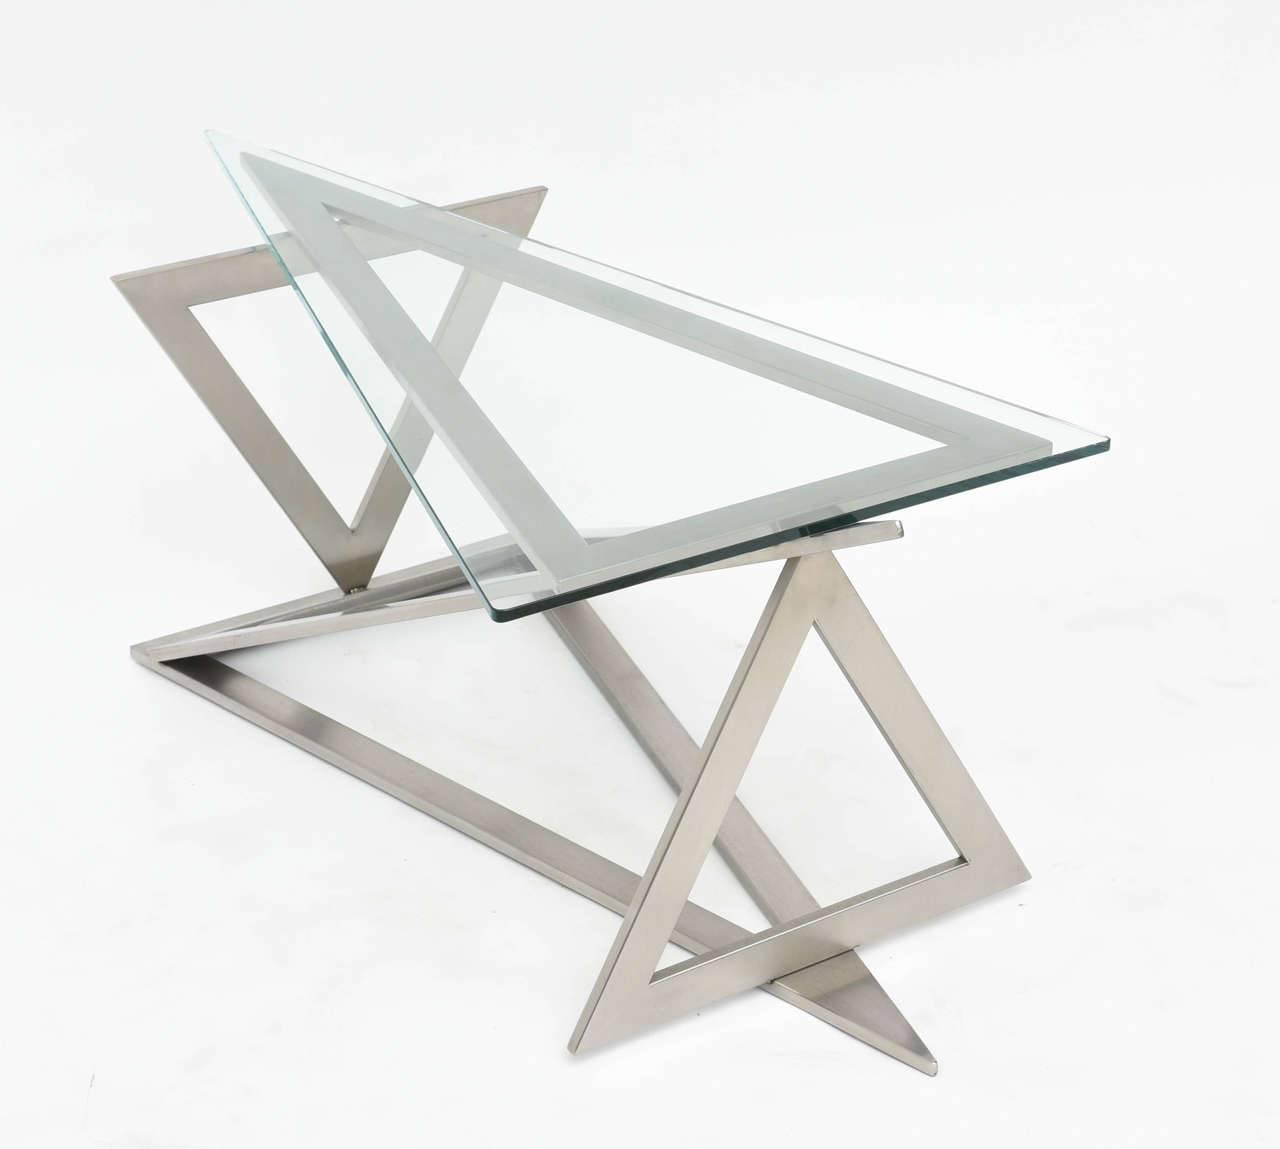 Artimeta Attributed Square Metal And Glass Coffee Table At: Italian Modern Stainless Steel And Glass Table Attributed